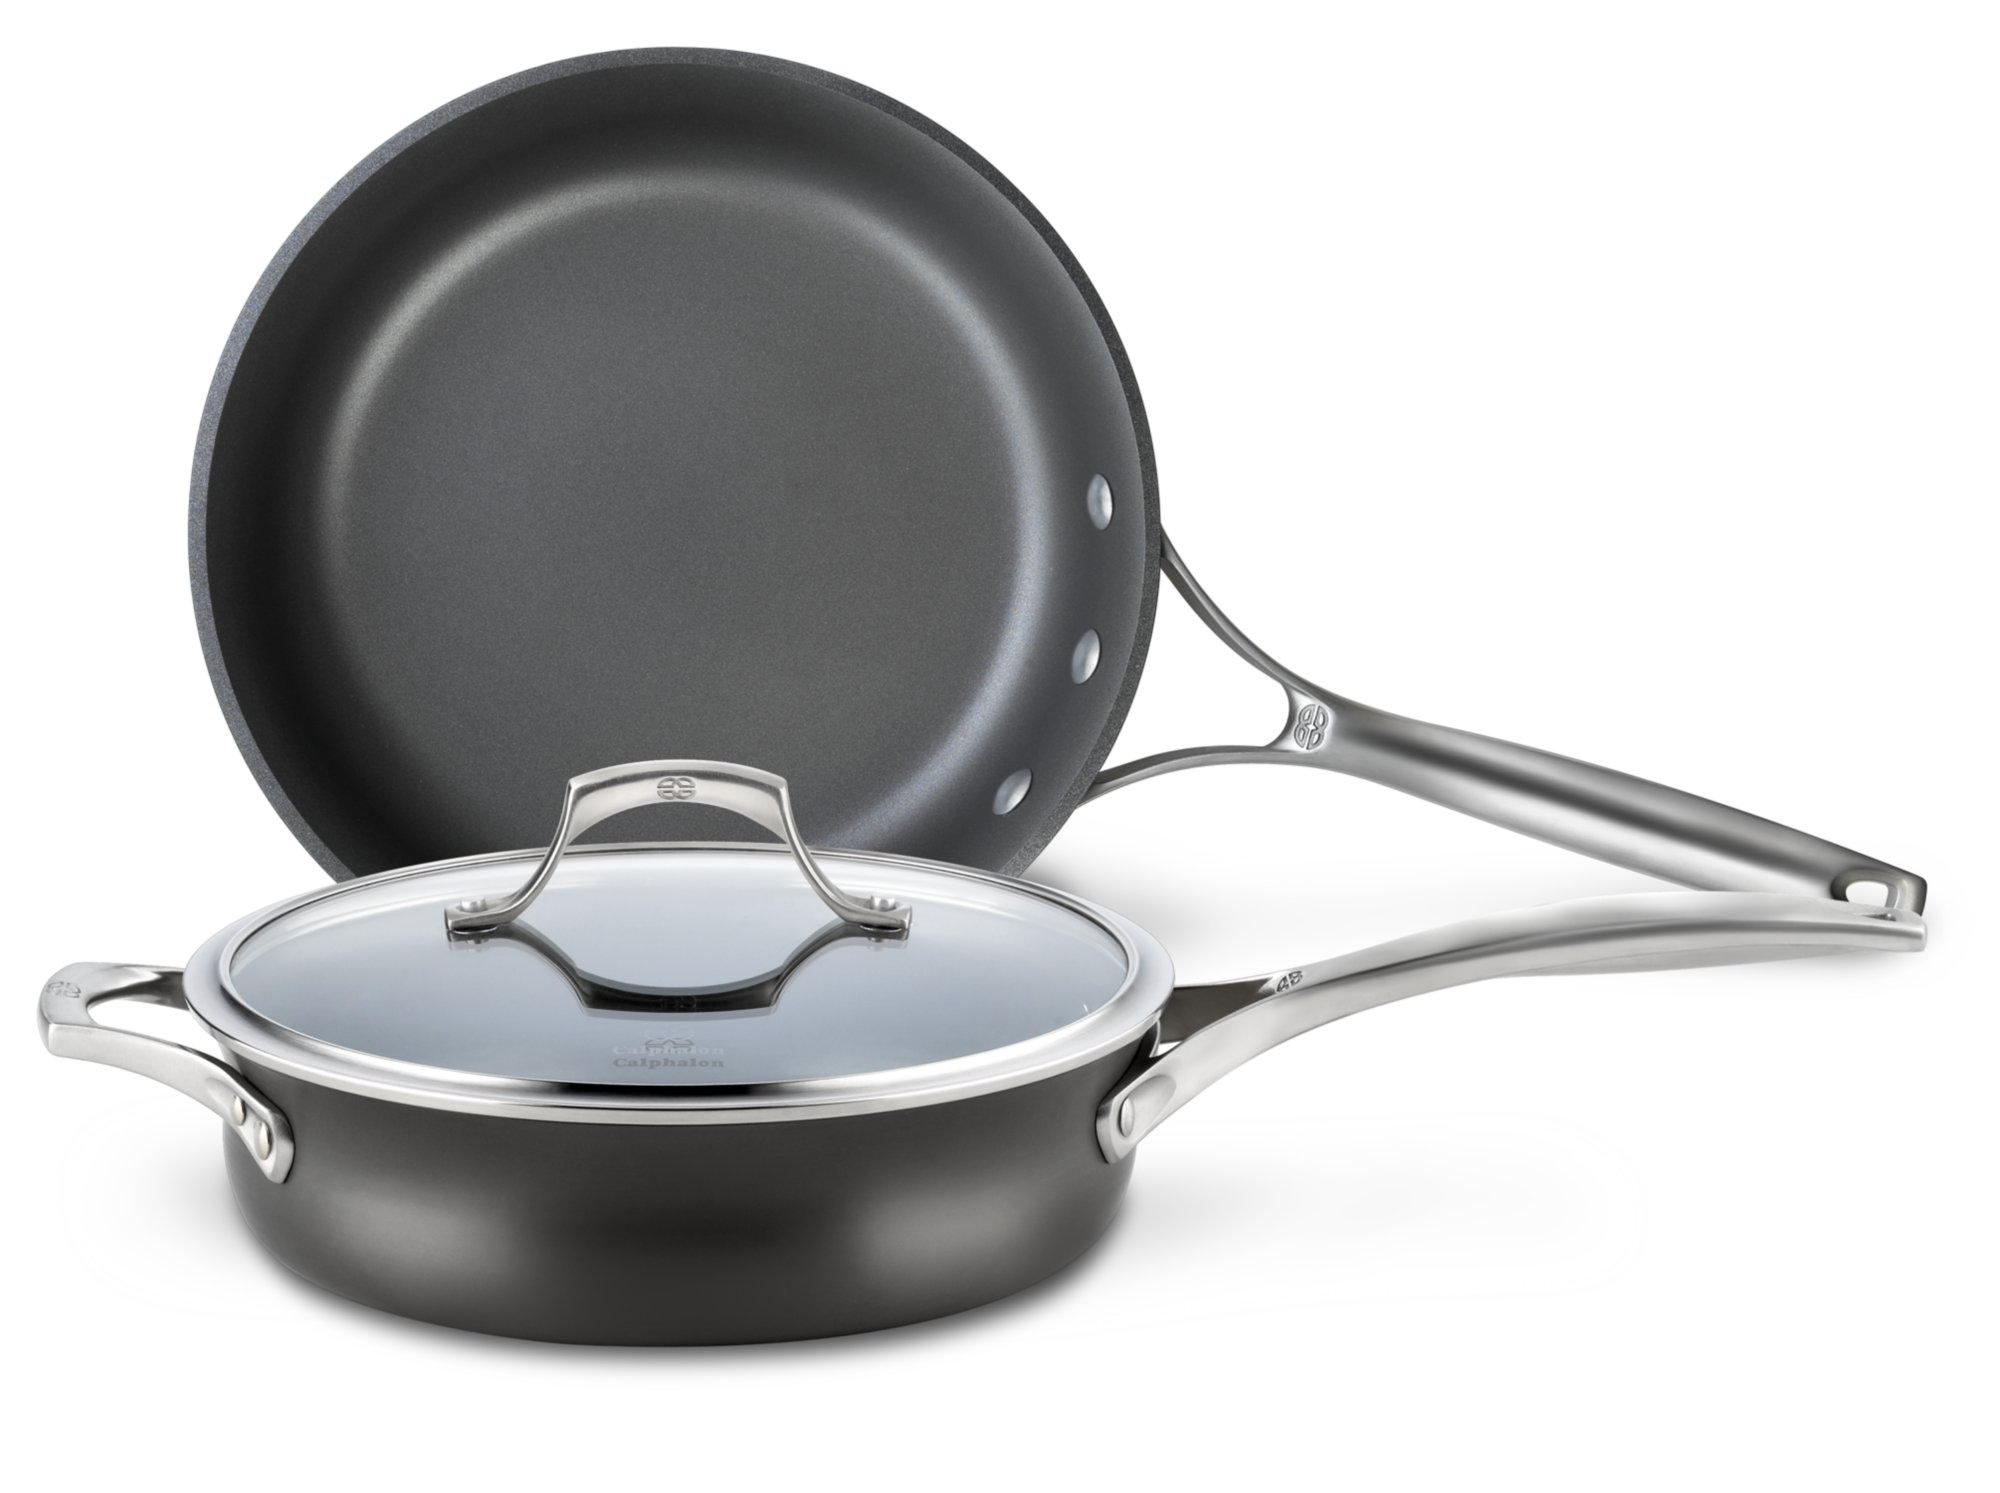 Calphalon Unison 3-pc. Set with Slide and Sear Nonstick